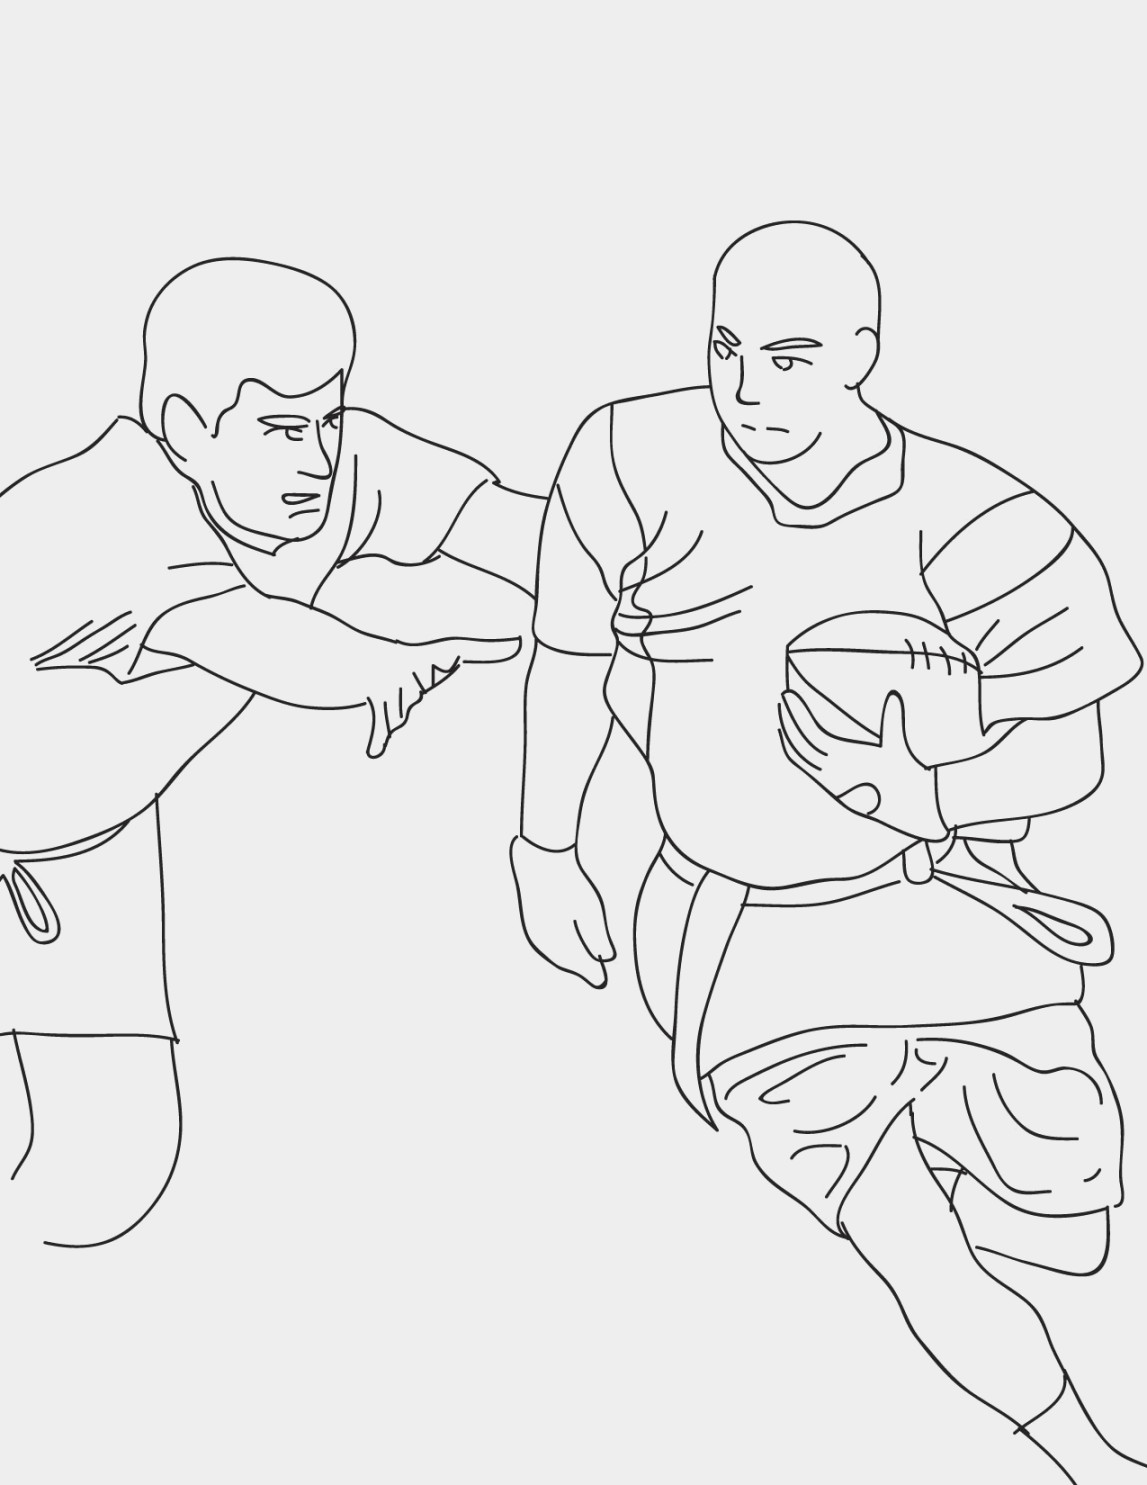 1147x1485 Flag Football Coloring Pages Beautiful Free Coloring Pages Of Flag